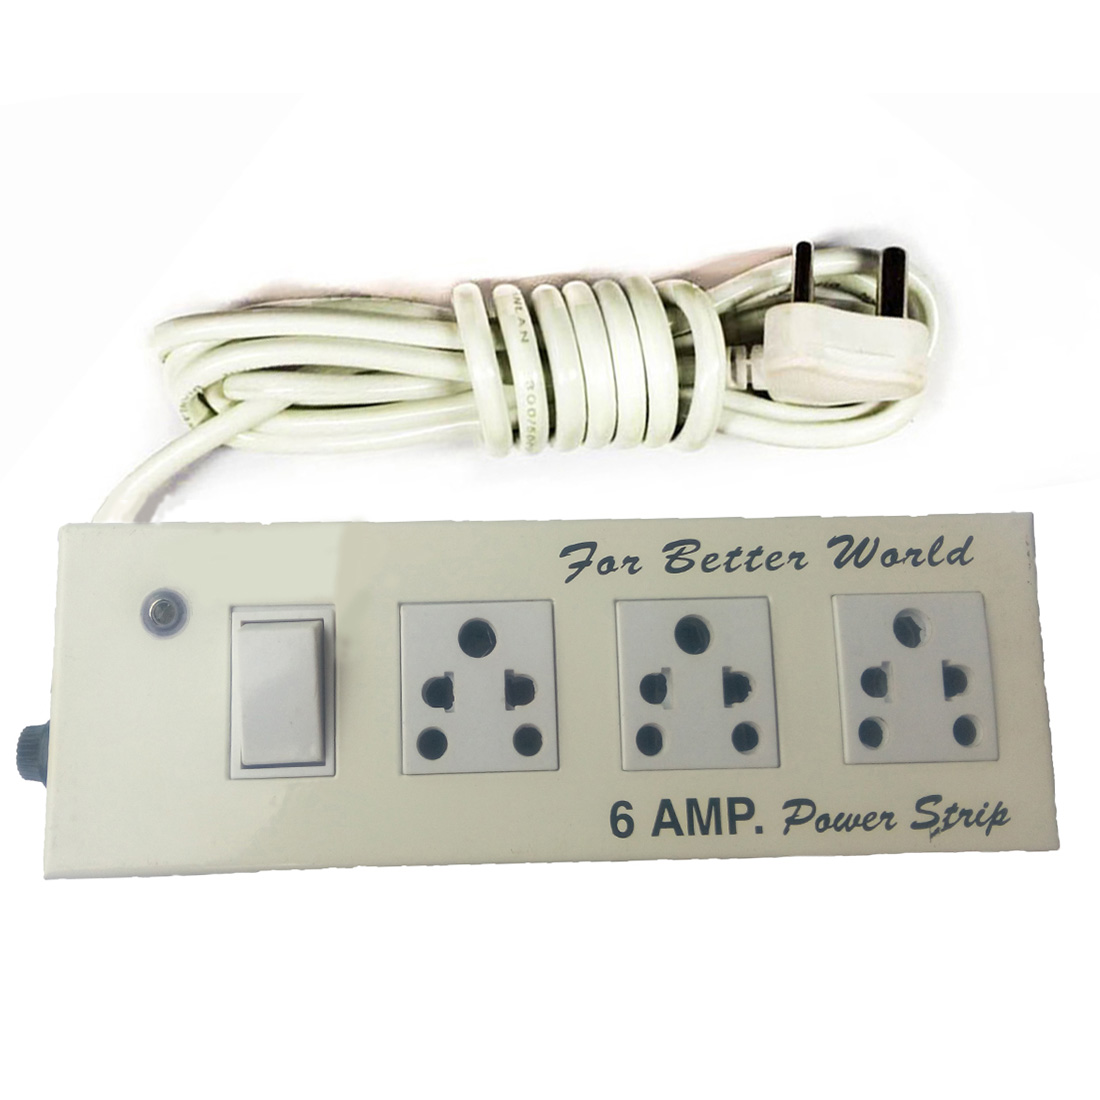 X EON Extension Board ,Solid Metal Body , Power Strip , 6 AMP, 3 Socket Surge Protector  White